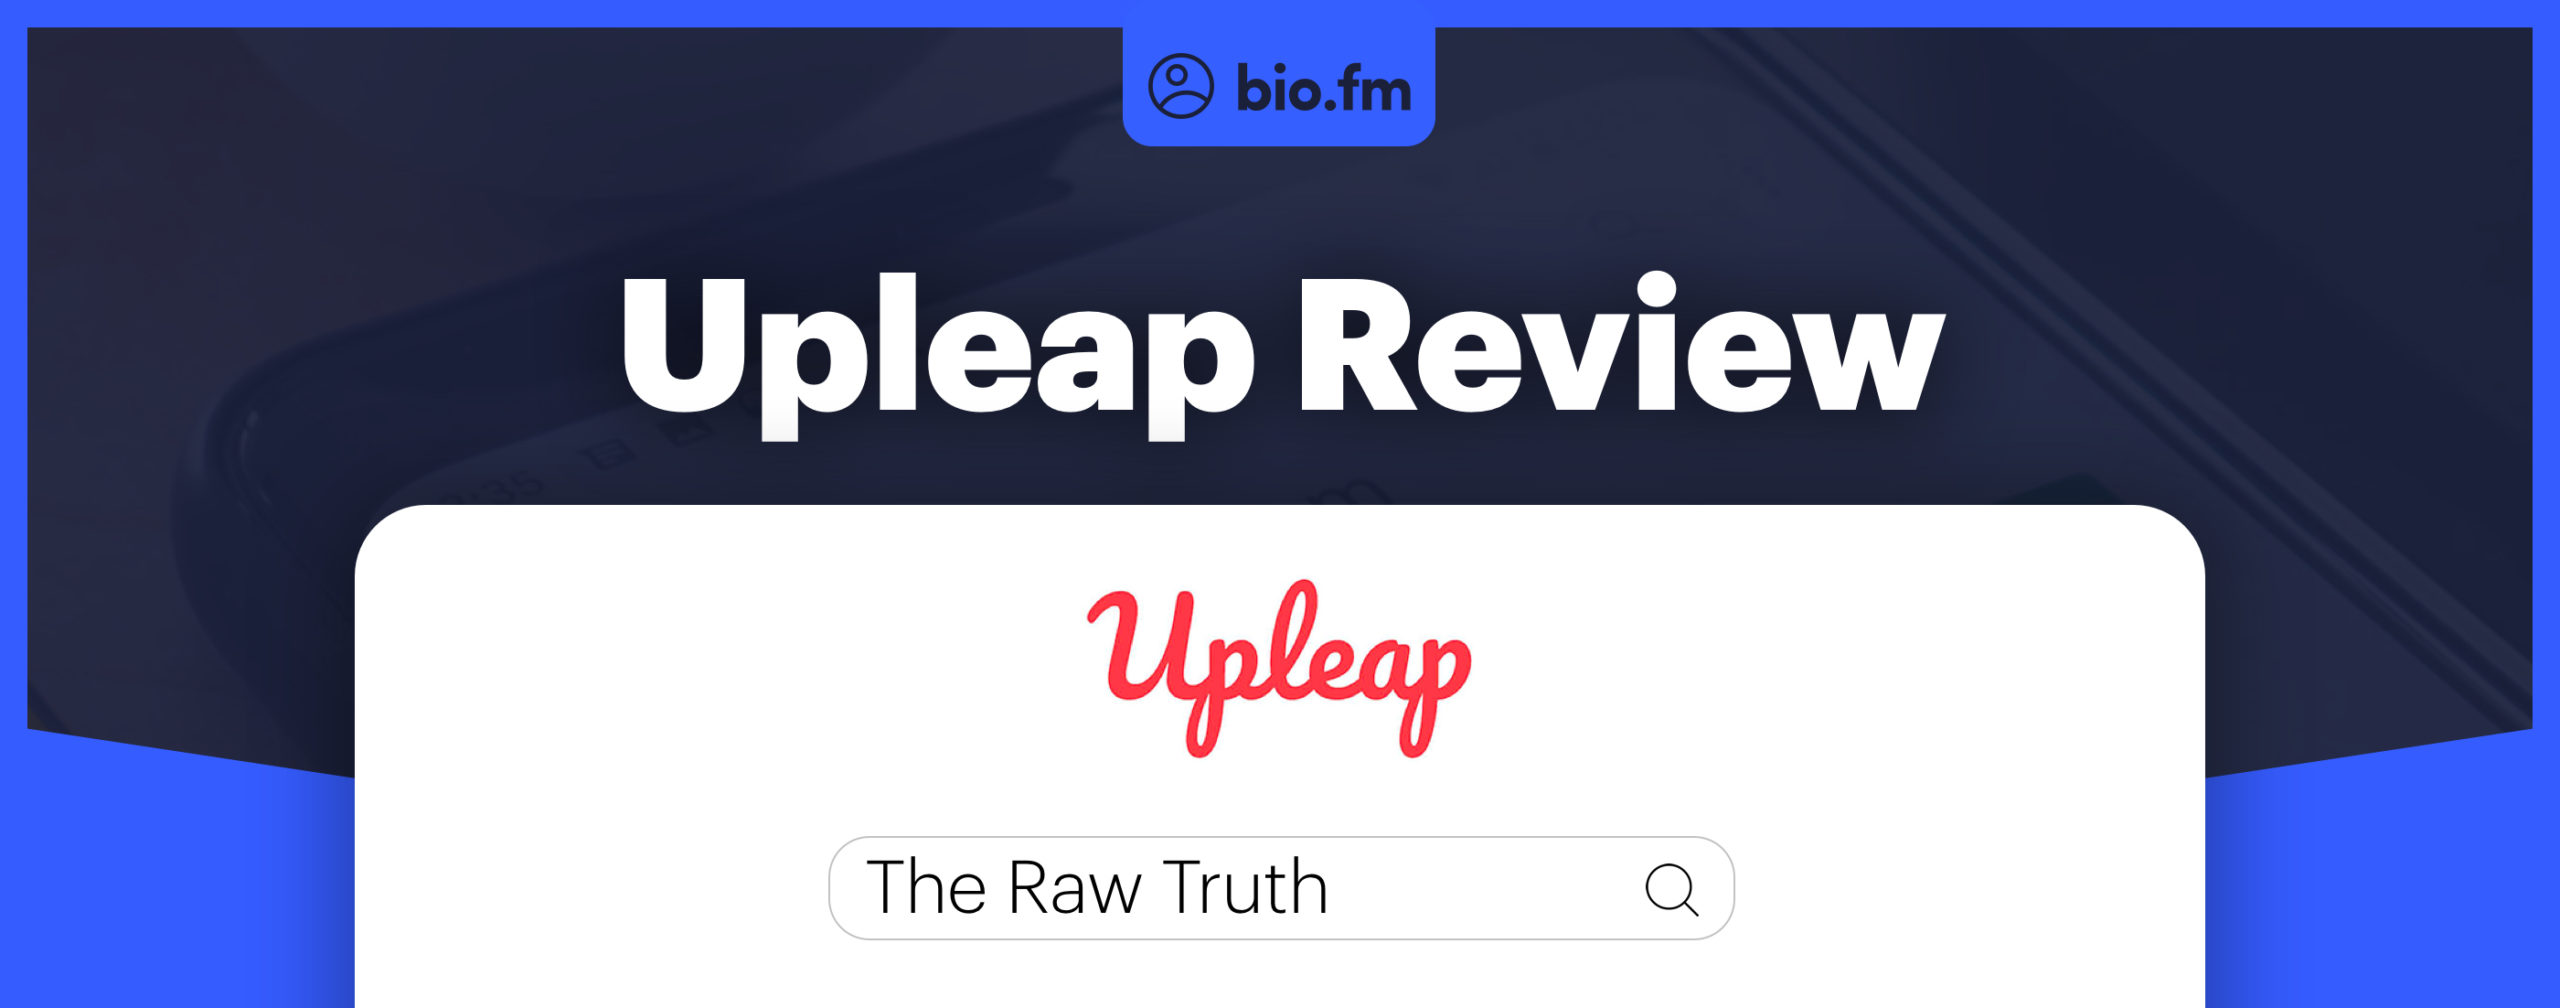 upleap review featured image